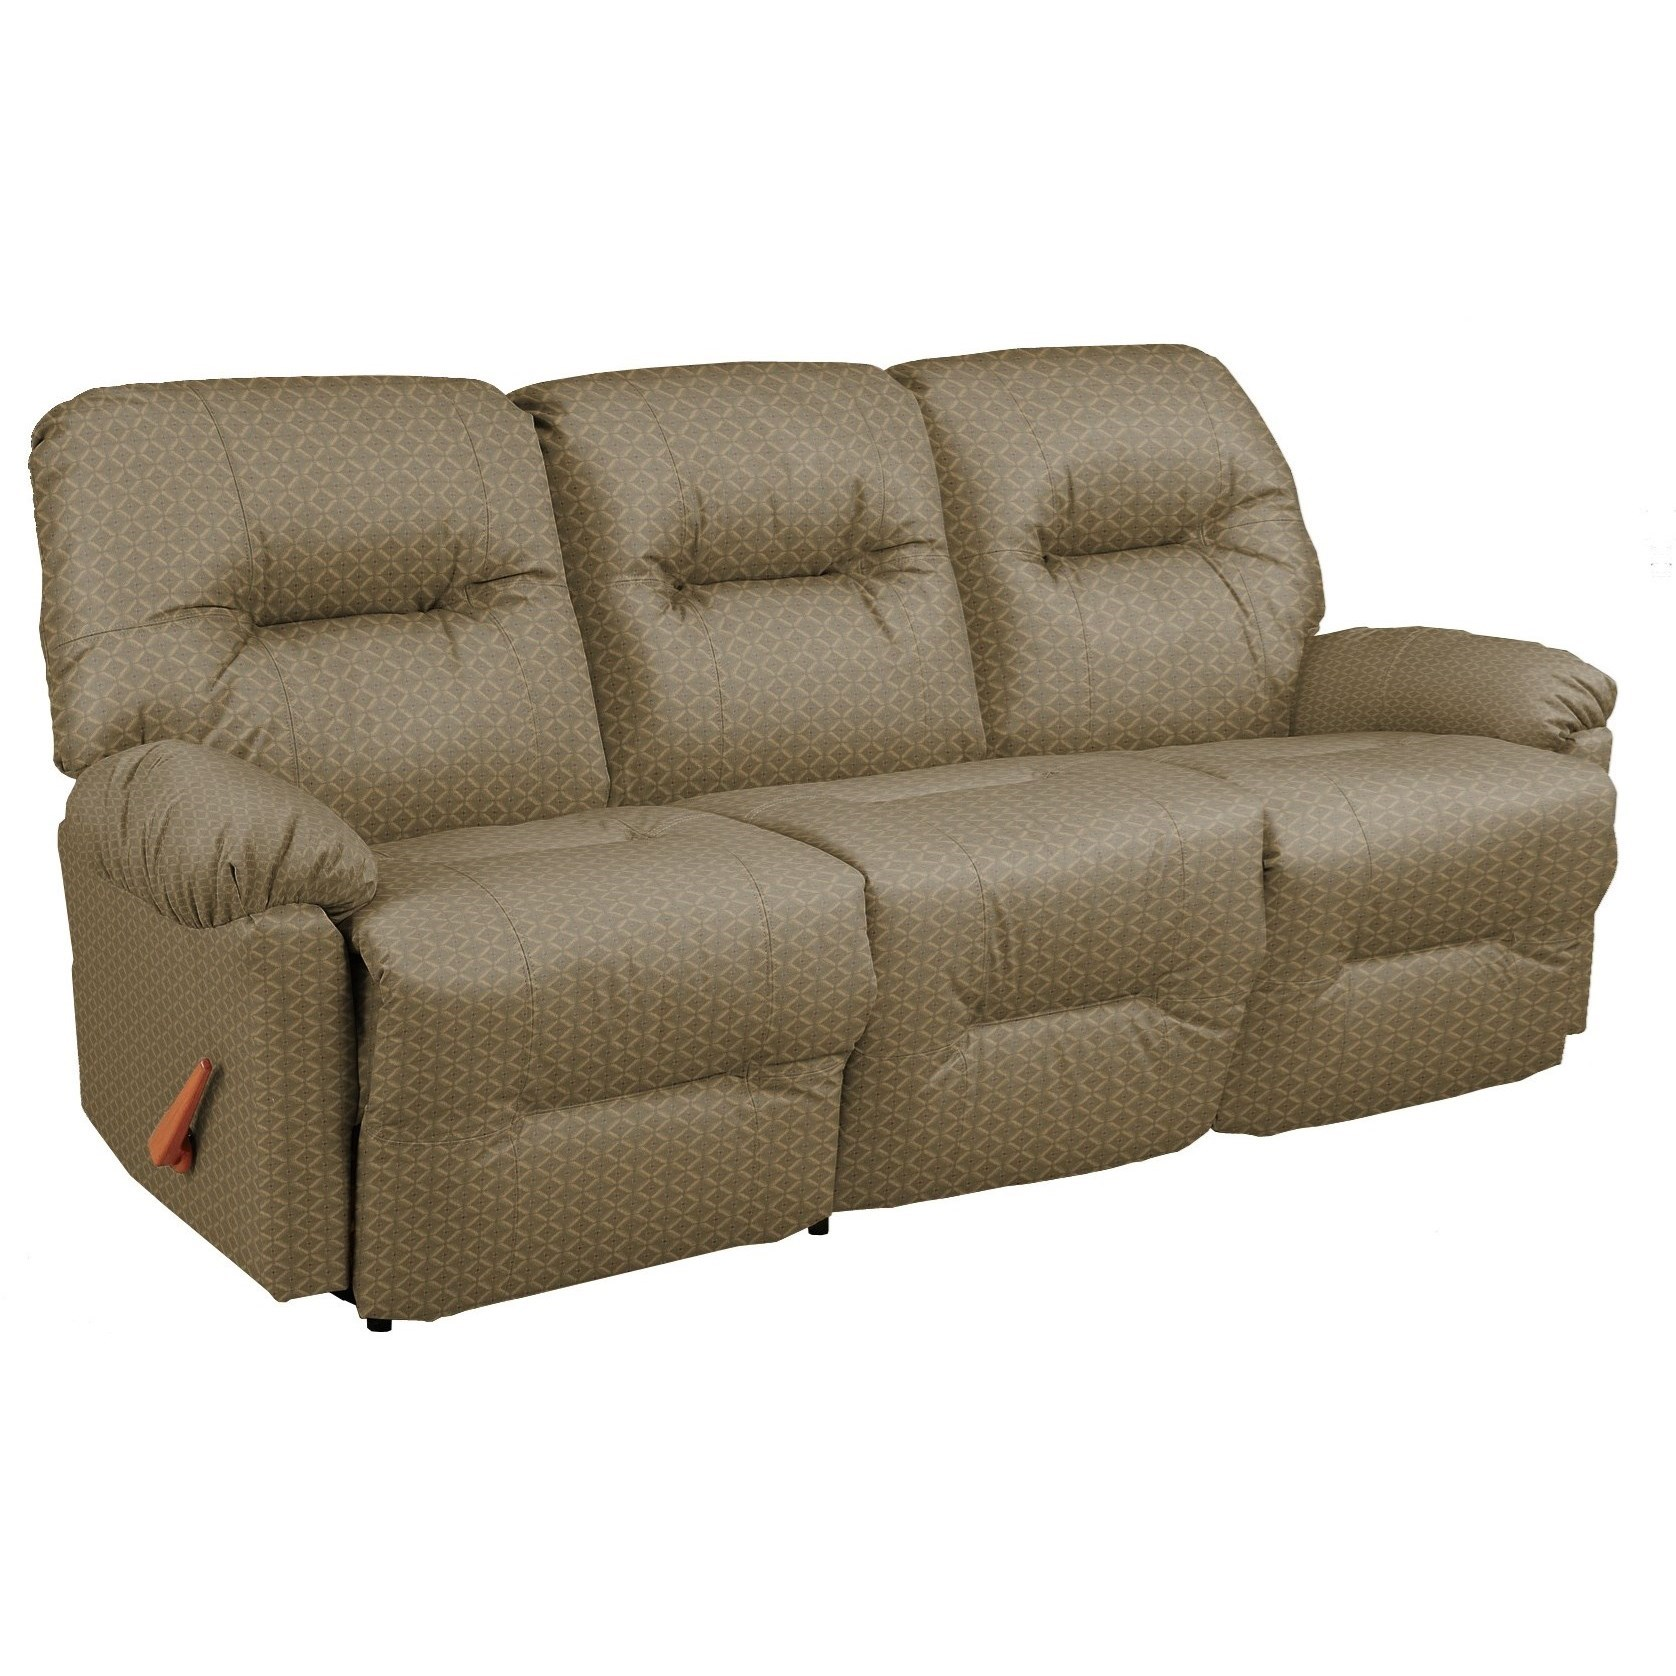 Best Home Furnishings Redford Power Reclining Sofa - Item Number: -513049128-18021